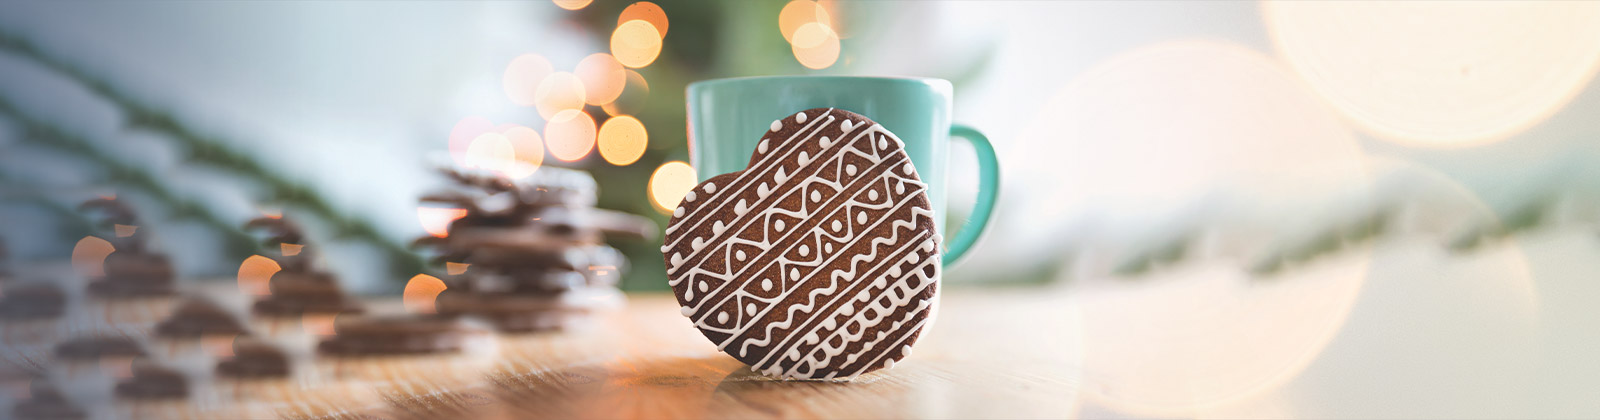 Chocolate heart with cup